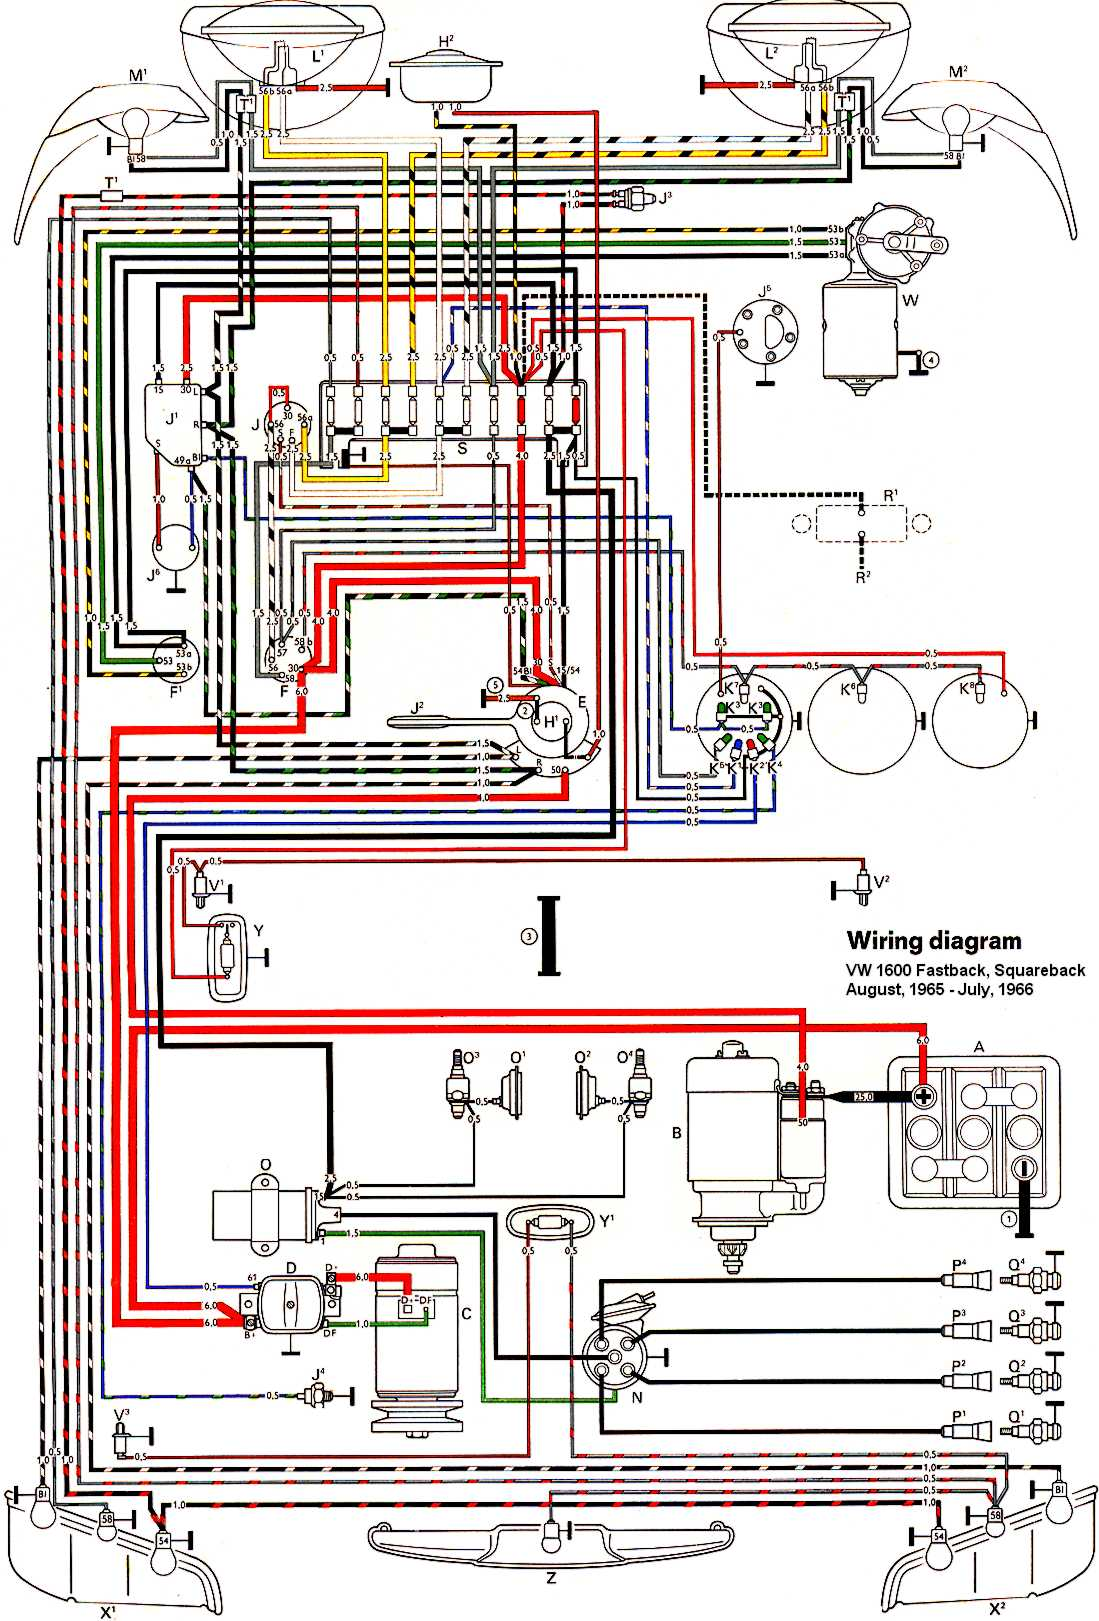 type3_1600_66 thesamba com type 3 wiring diagrams find wiring diagram for 87 ford f 150 at honlapkeszites.co